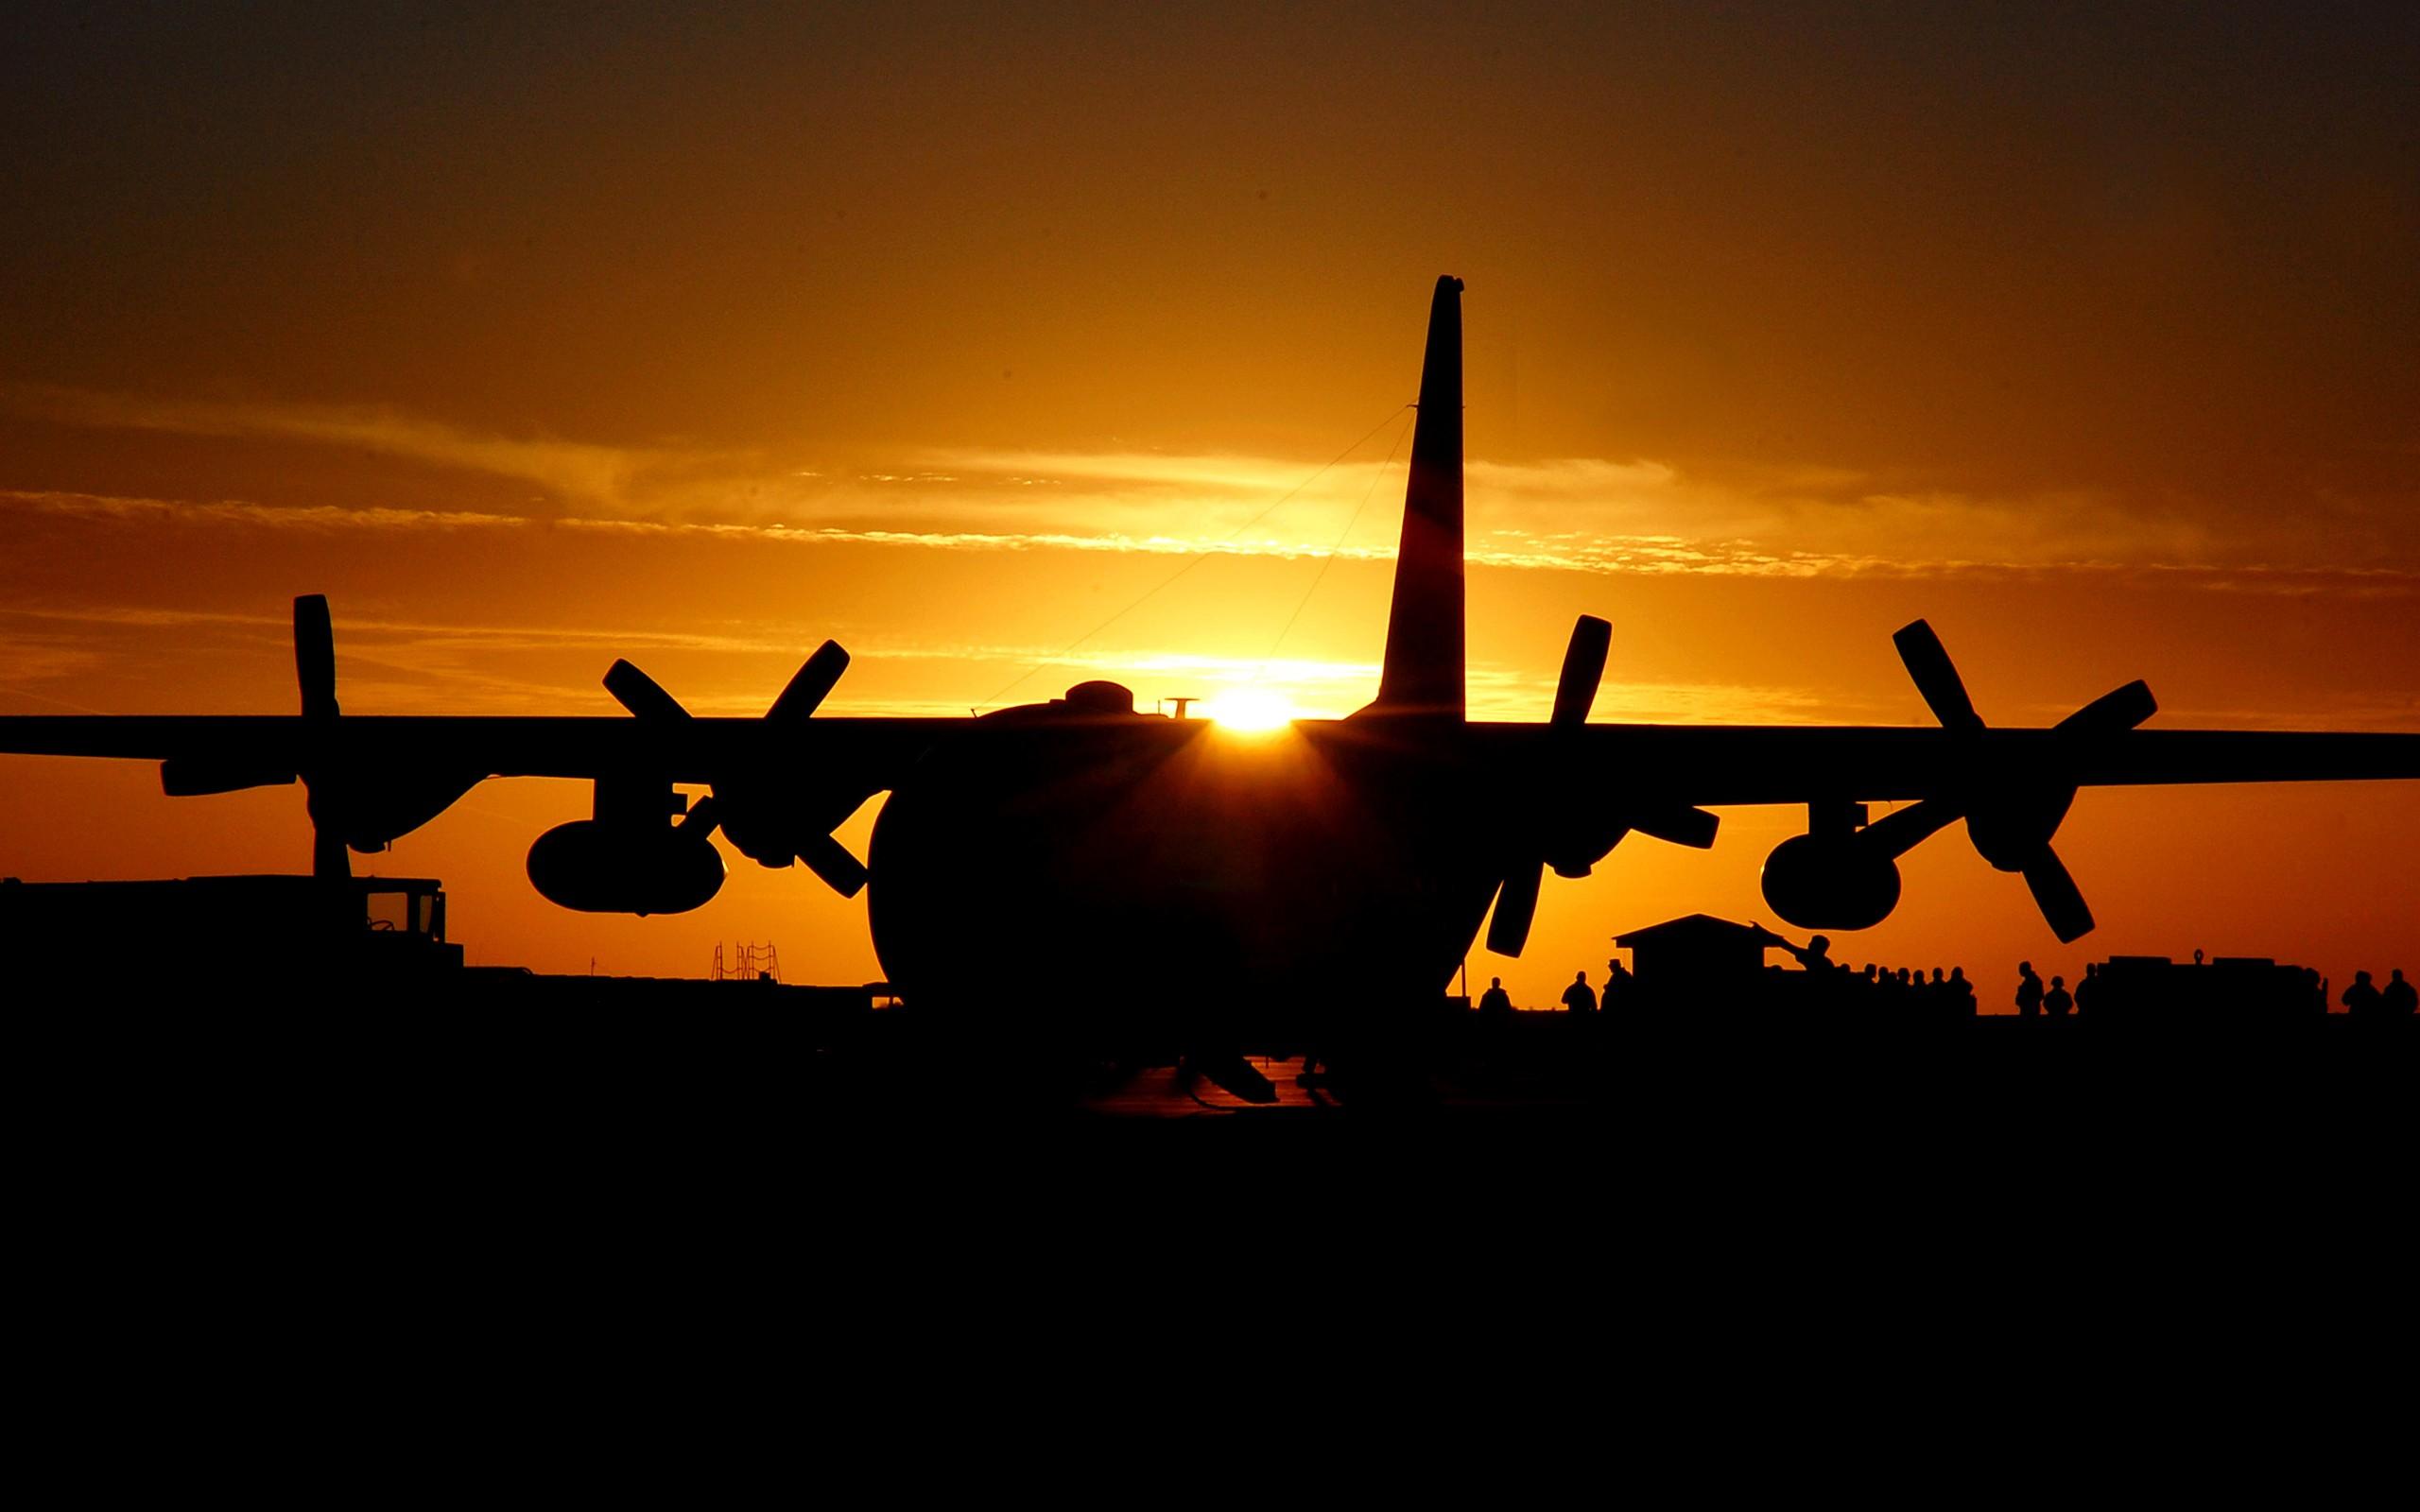 Lockheed C 130 Hercules Wallpaper Hd C 130 Hercules 1598722